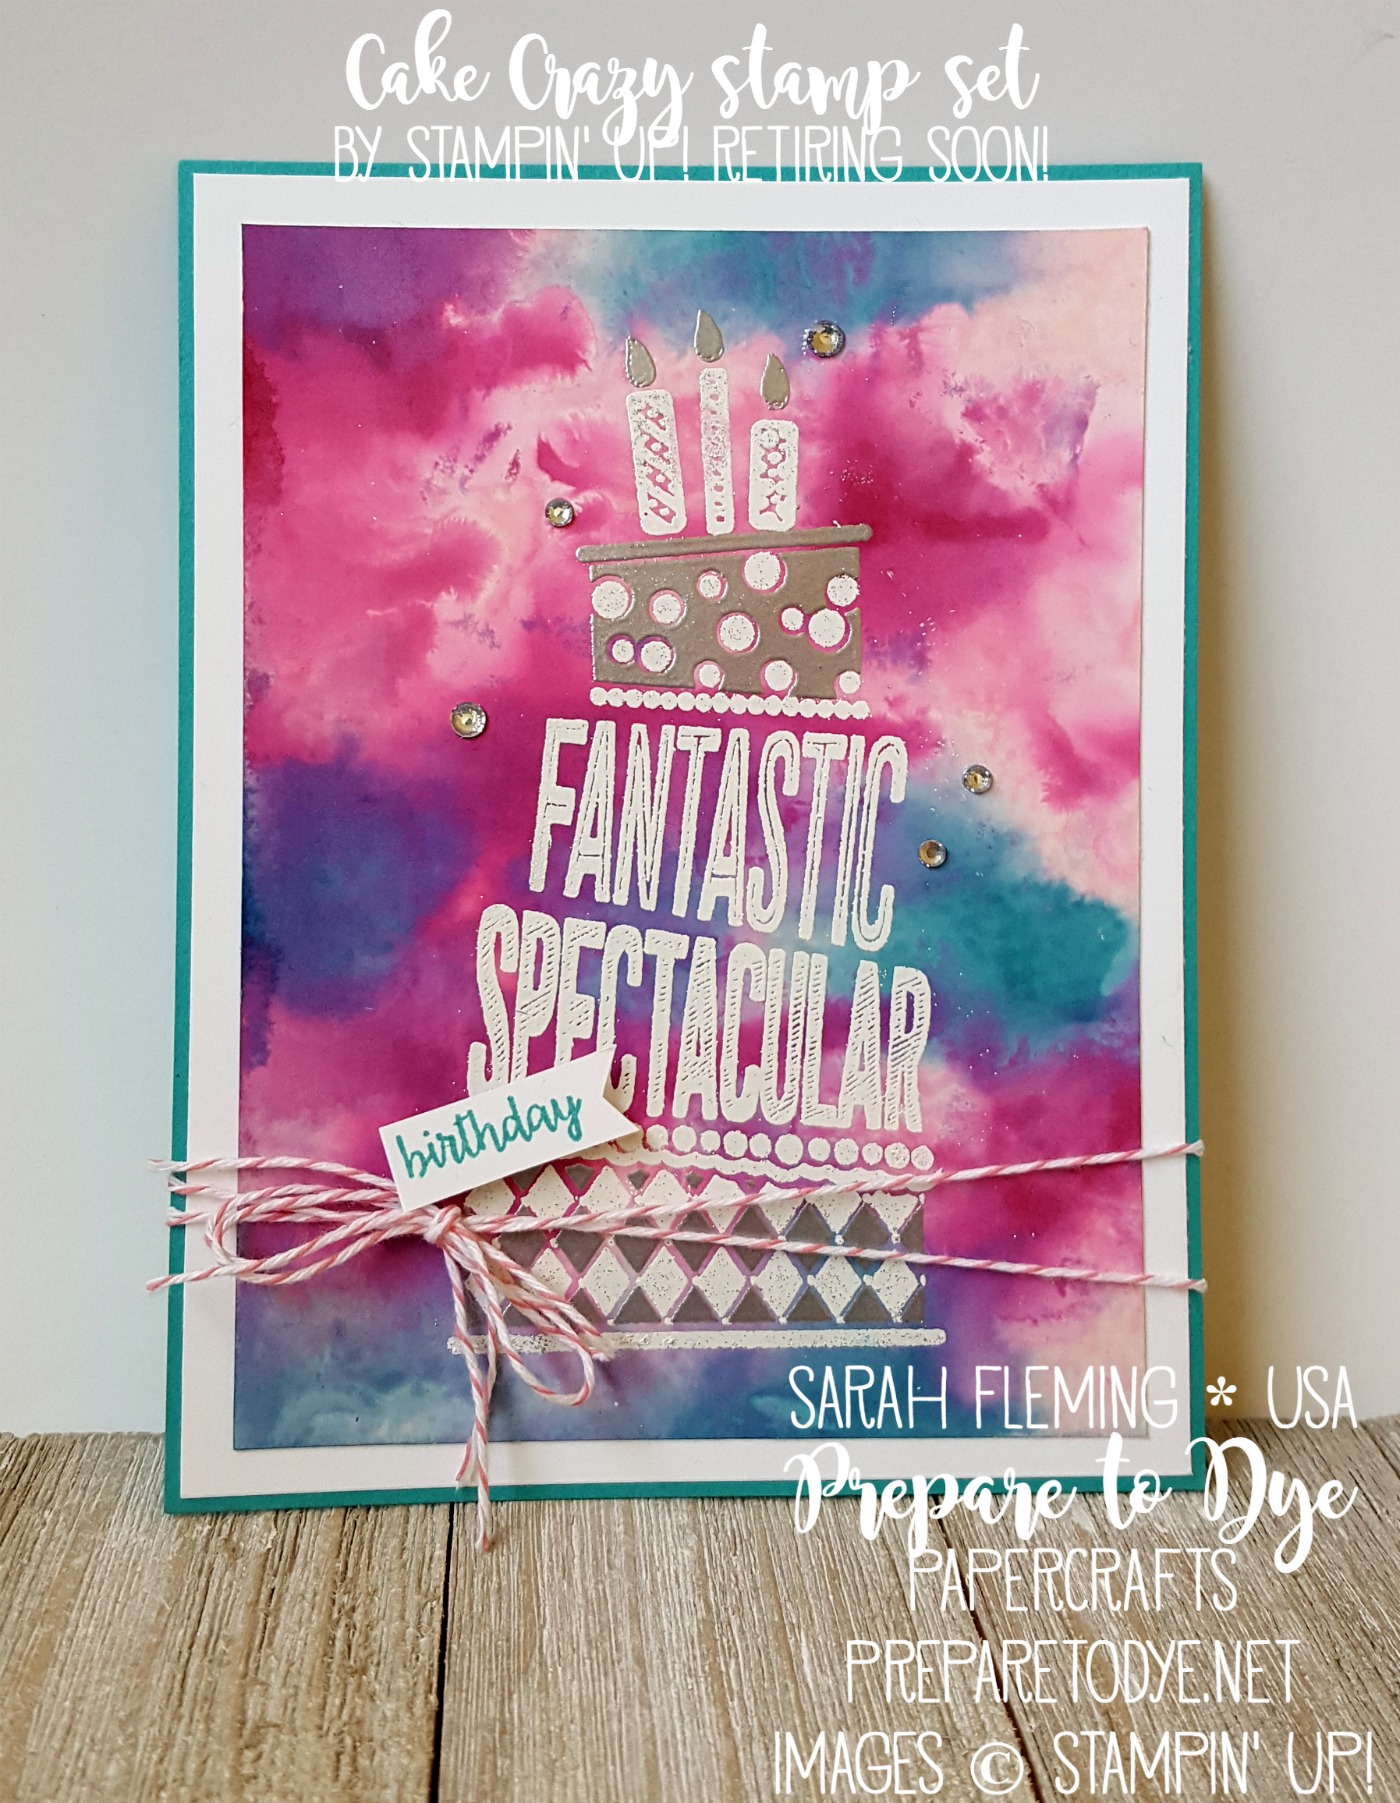 Stampin' Up! Cake Crazy stamp set with glossy cardstock and Ink, Spray, & Smash technique - Stampin' Dreams Blog Hop - Sarah Fleming - Prepare to Dye Papercrafts - #SDBH